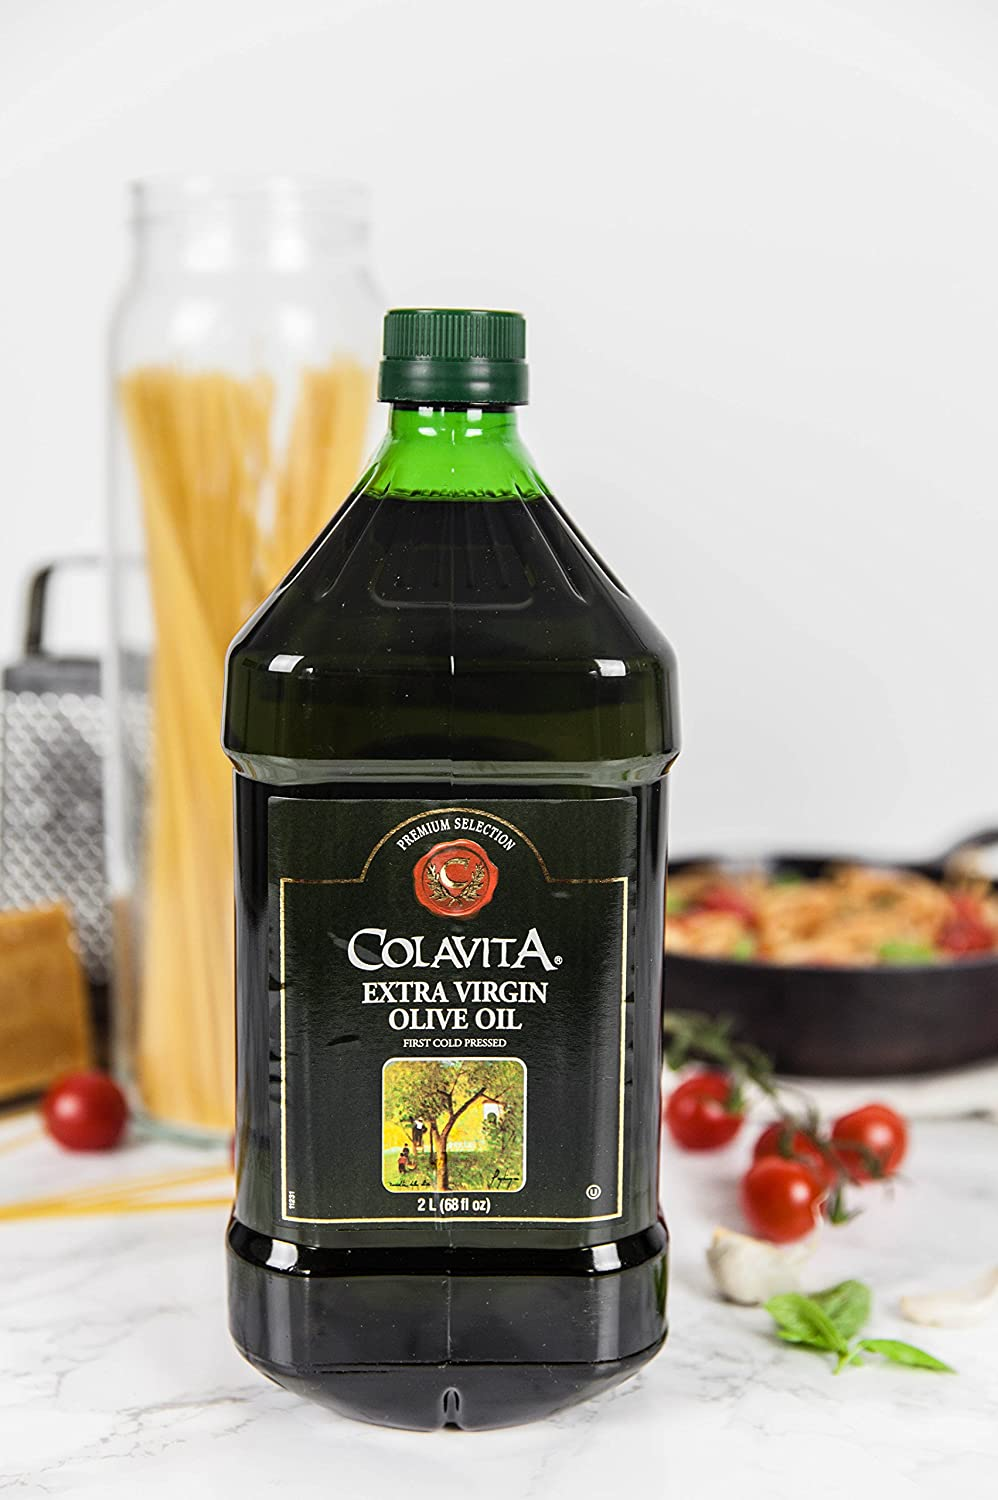 Colavita Extra Virgin Olive Oil, 68 Fluid Oz